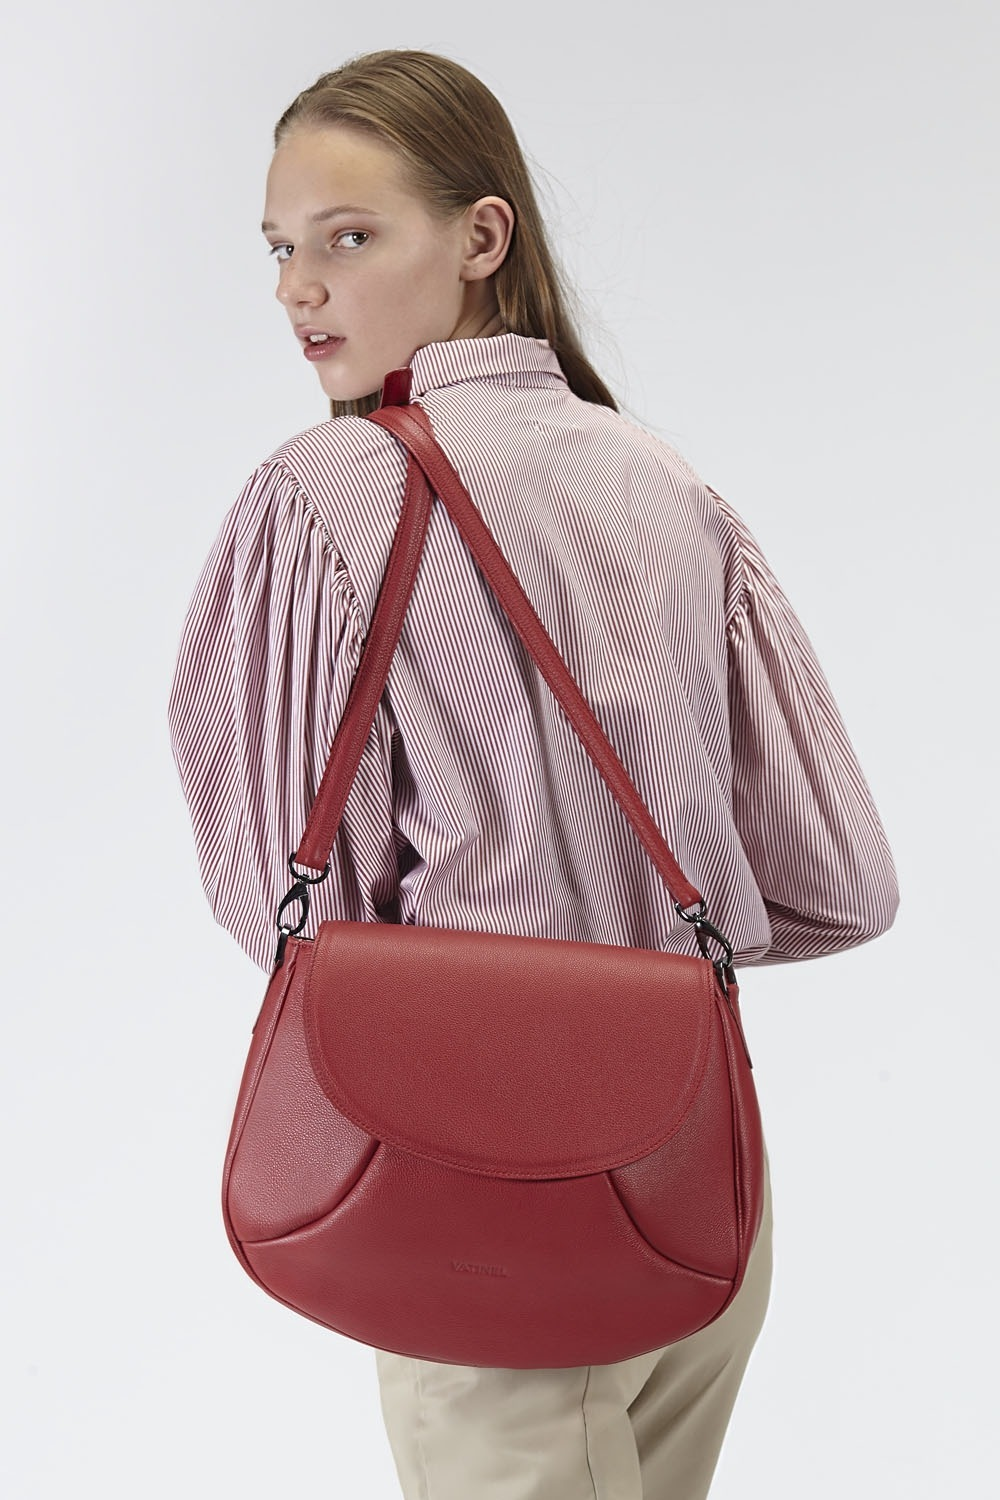 VATINEL HANDBAGS BRUSSELS RUBY